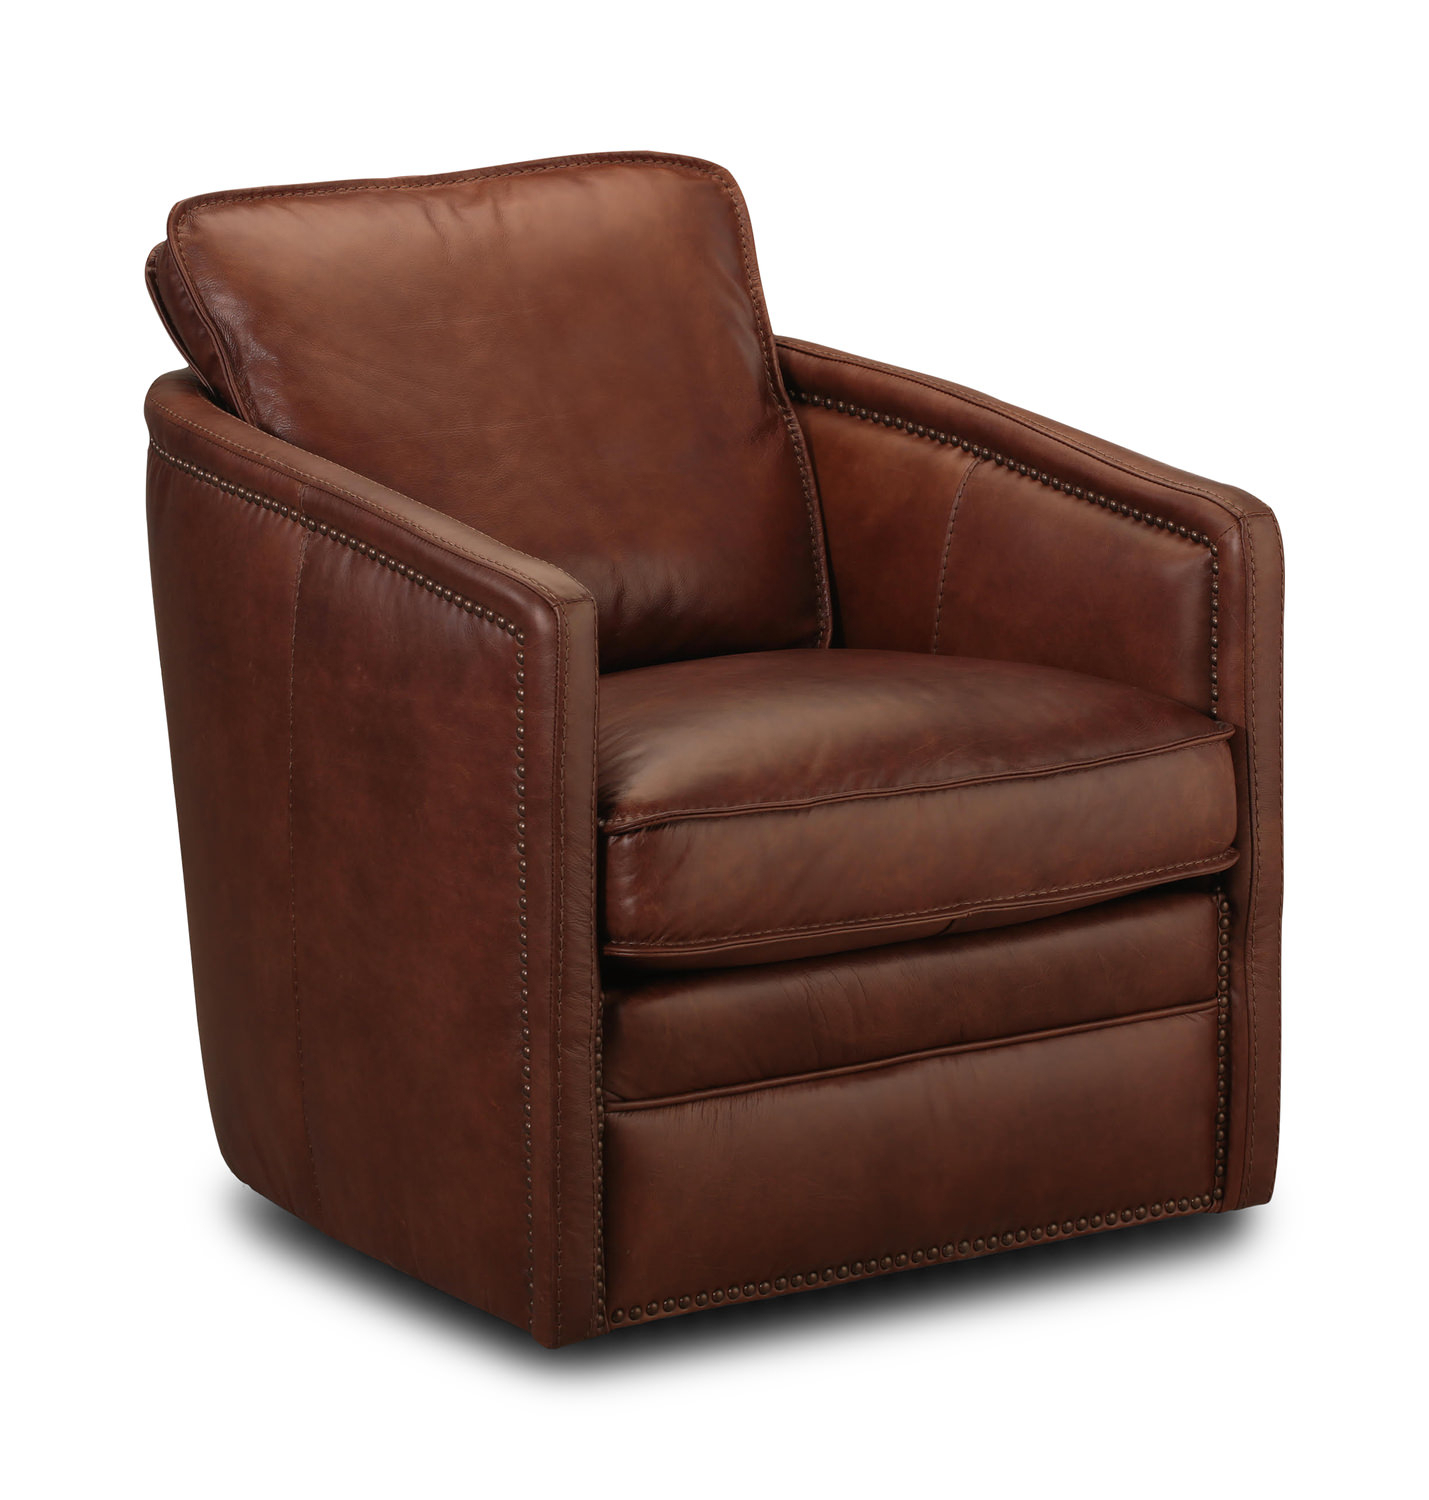 Pivot Leather Swivel Chairthomas Cole | Hom Furniture Regarding Swivel Tobacco Leather Chairs (View 4 of 25)